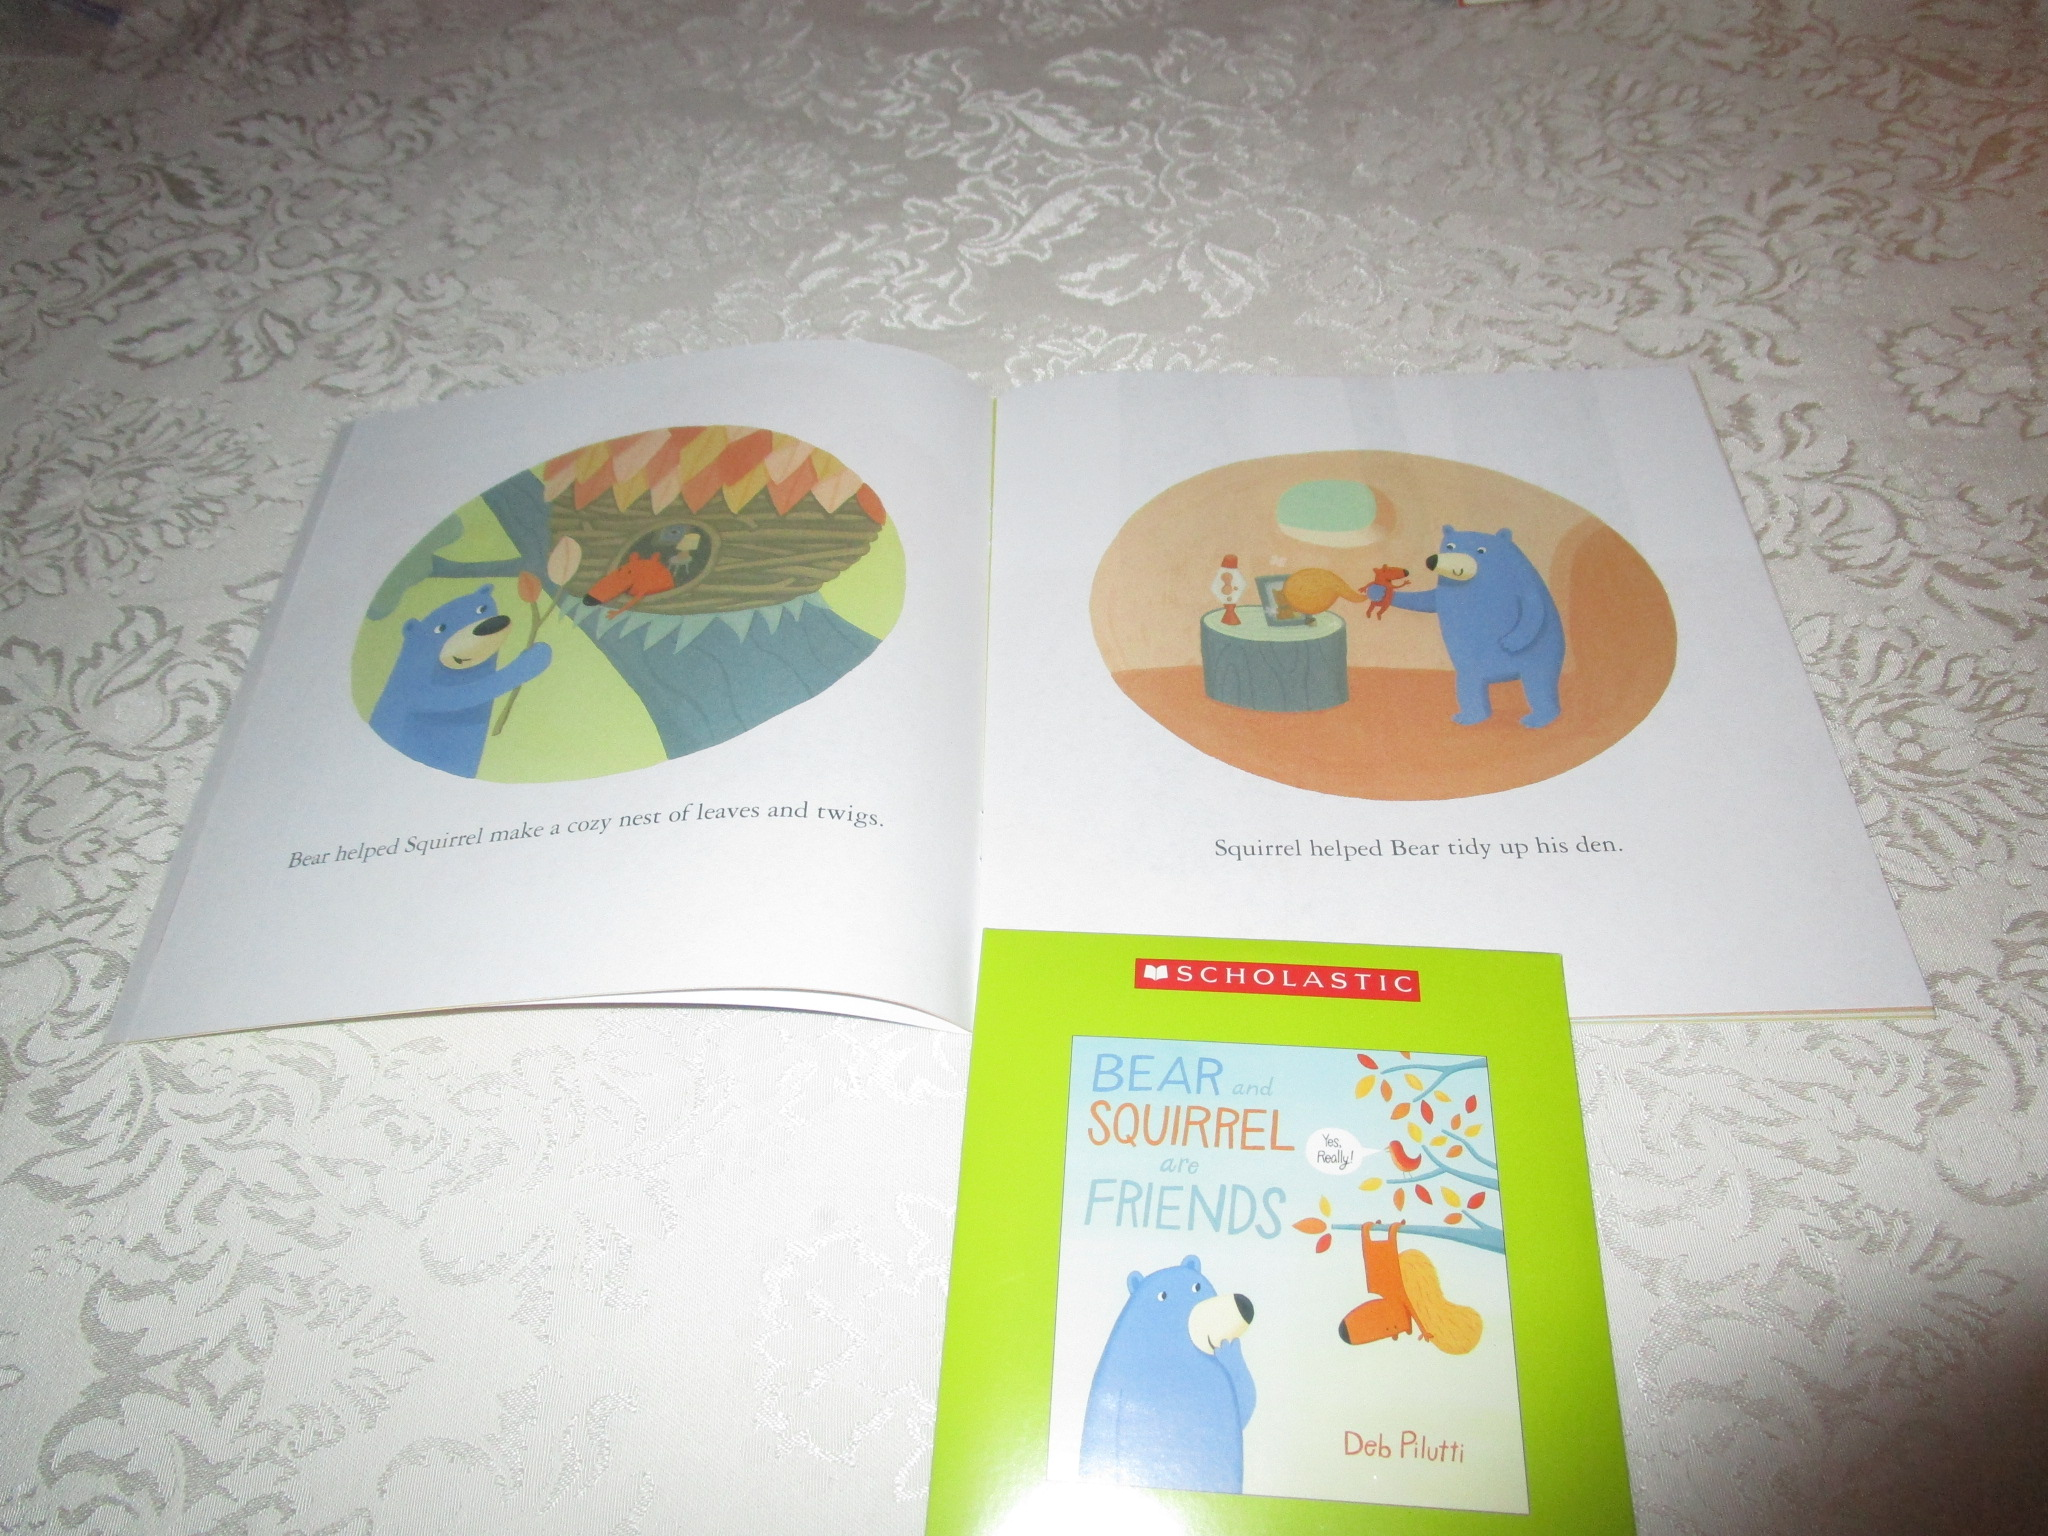 Image 1 of Bear And Squirrel Are Friends Deb Pilutti Audio CD & SC Brand New